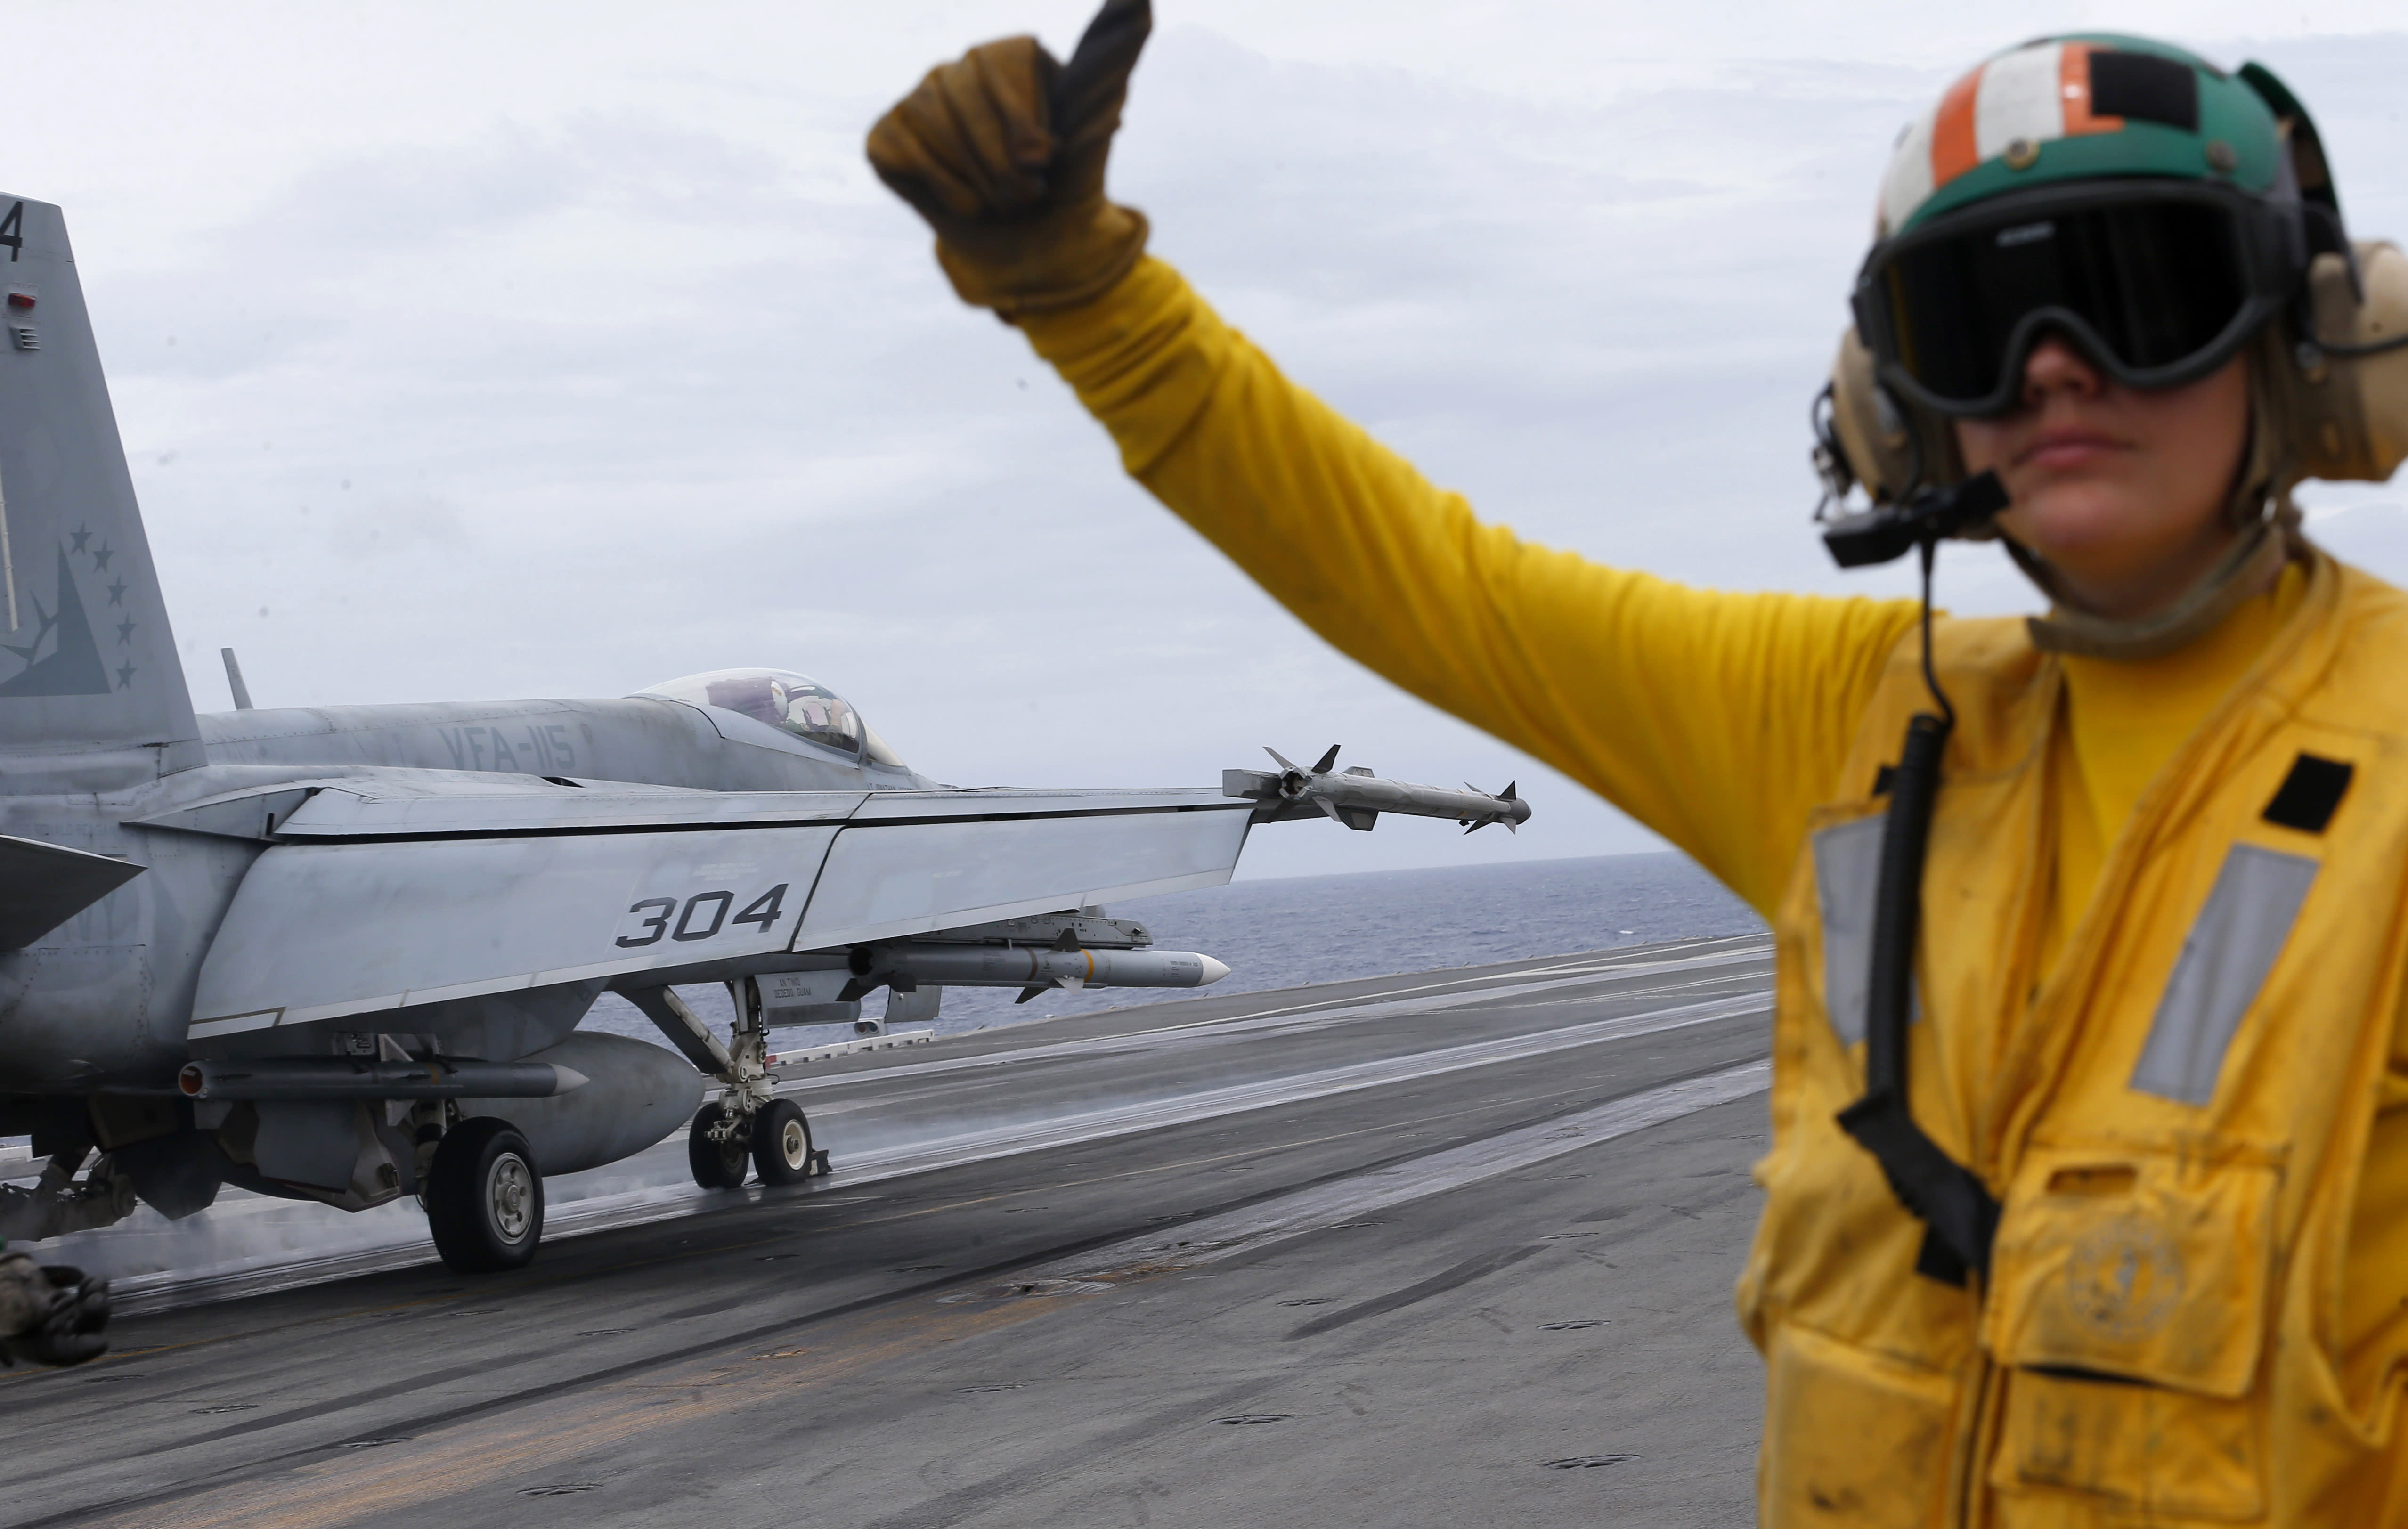 FILE - In this Aug. 6, 2019, file photo, a U.S. fighter jet takes off from the U.S. aircraft carrier USS Ronald Reagan for their patrol at the international waters off the South China Sea. The U.S. Air Force's chief of staff says there are no plans to reduce freedom of operations in the South China Sea that China points to as the source of increased tensions in the region. (AP Photo/Bullit Marquez, File)